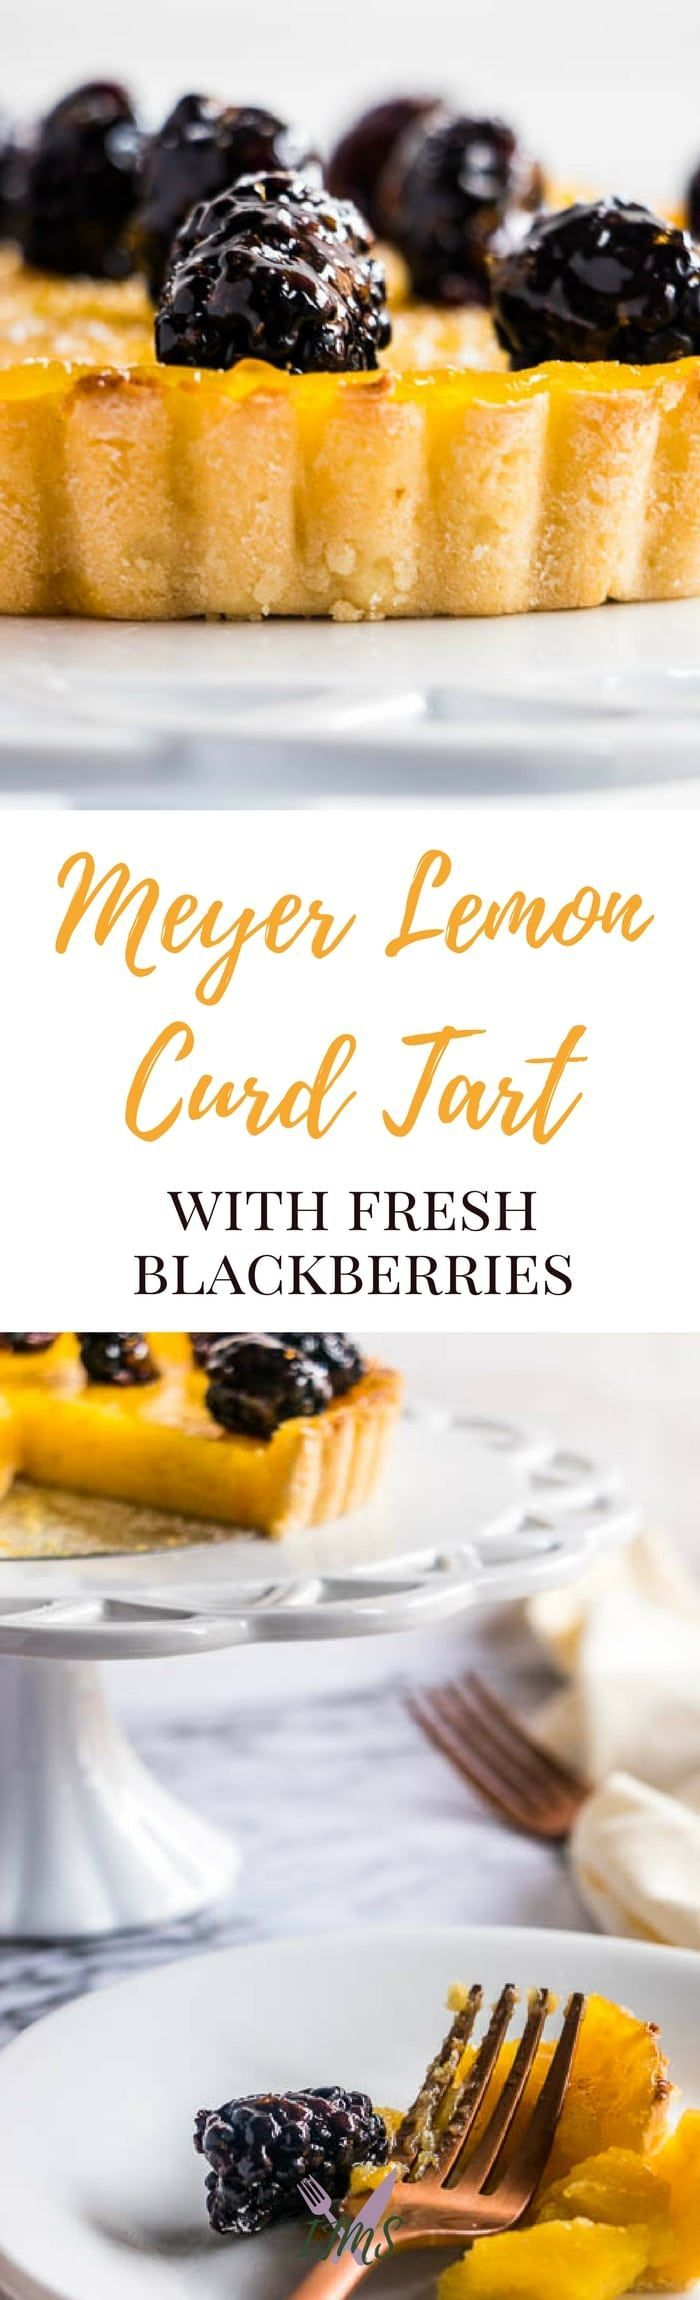 The flavors of Meyer lemon and blackberry come together in this refreshing Meyer Lemon Curd Tart with Fresh Blackberries. Perfect as a dessert in late winter or early spring! via @ijustmakesandwi